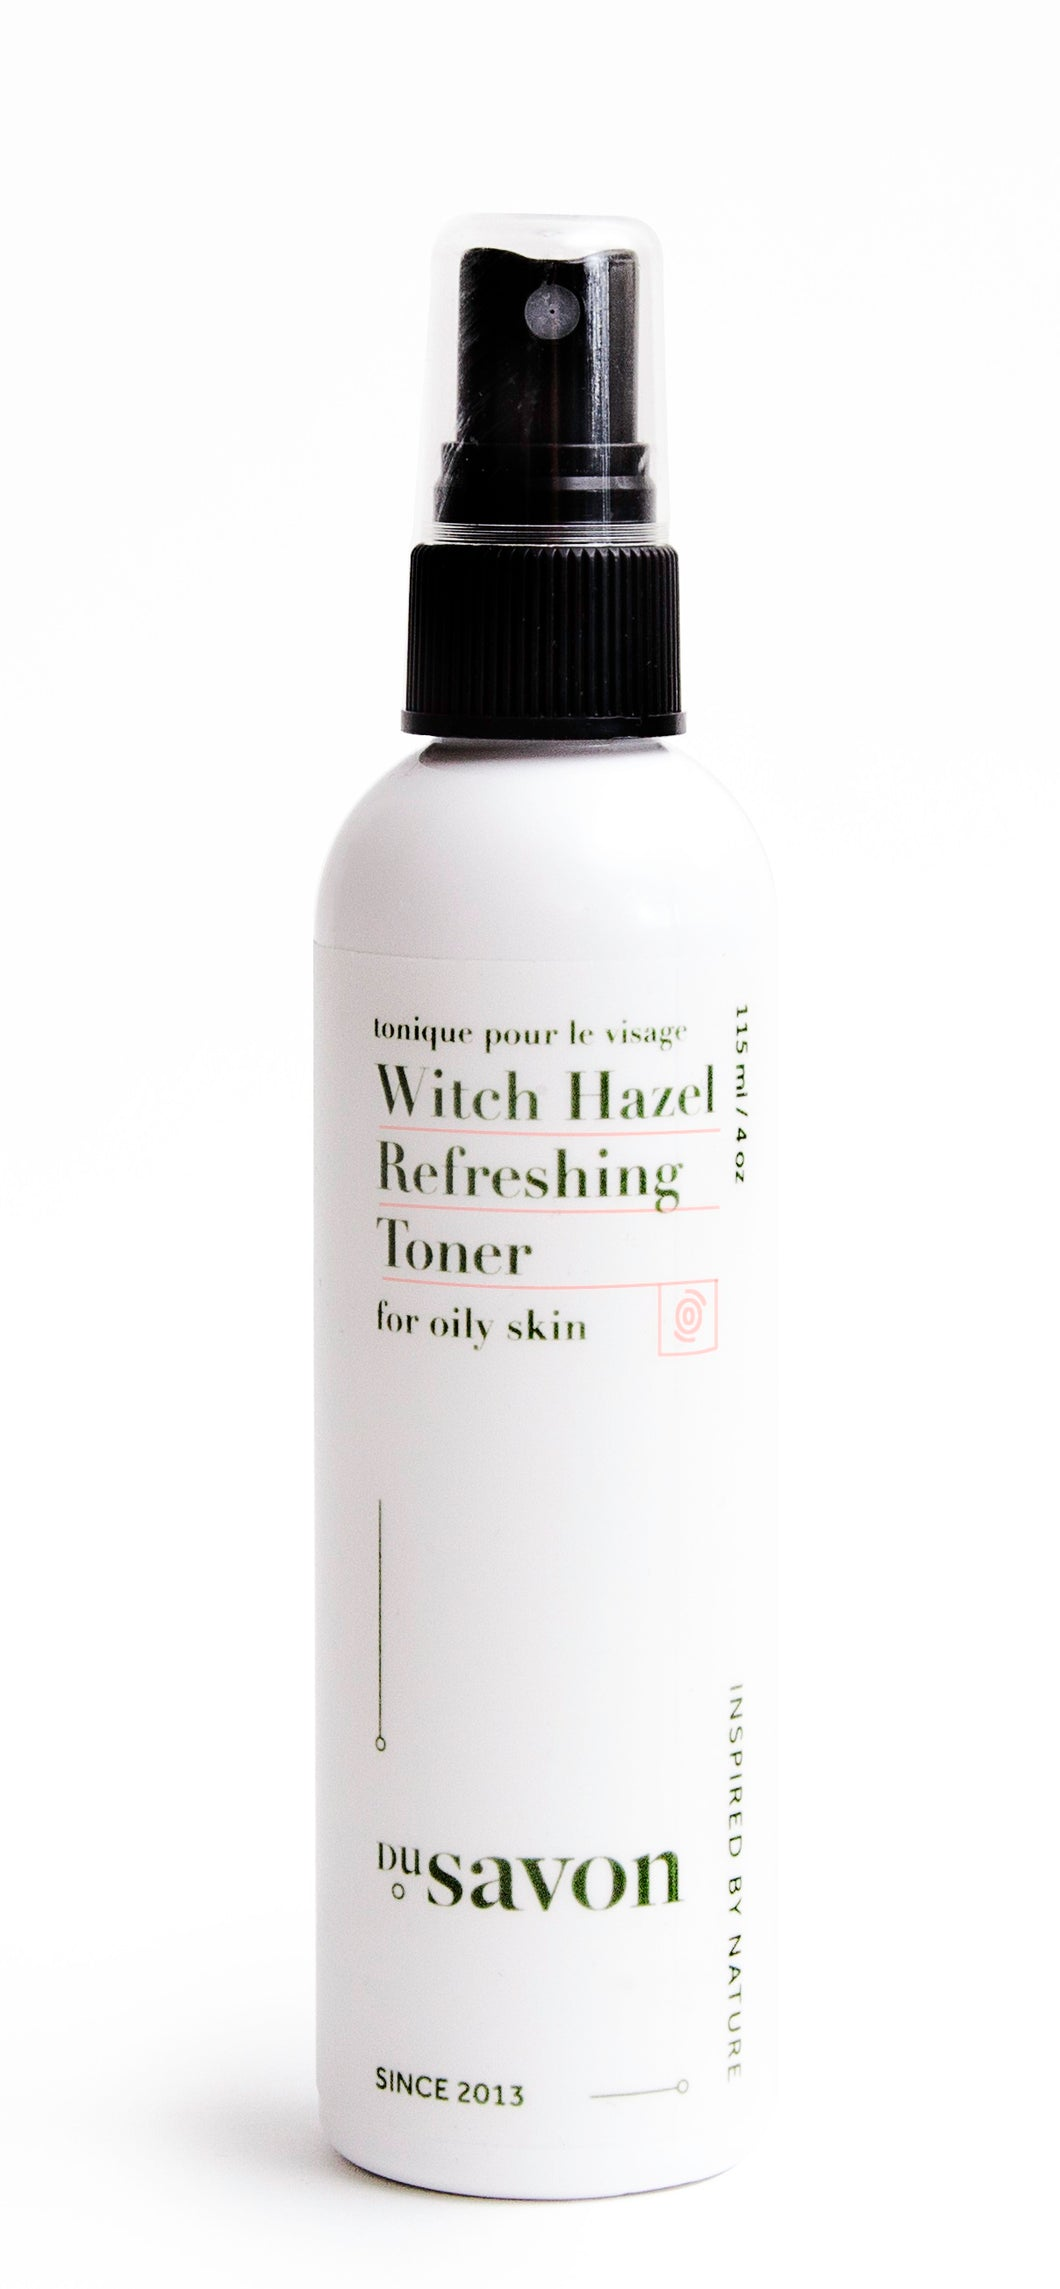 Witch Hazel Refreshing Toner for Oily skin